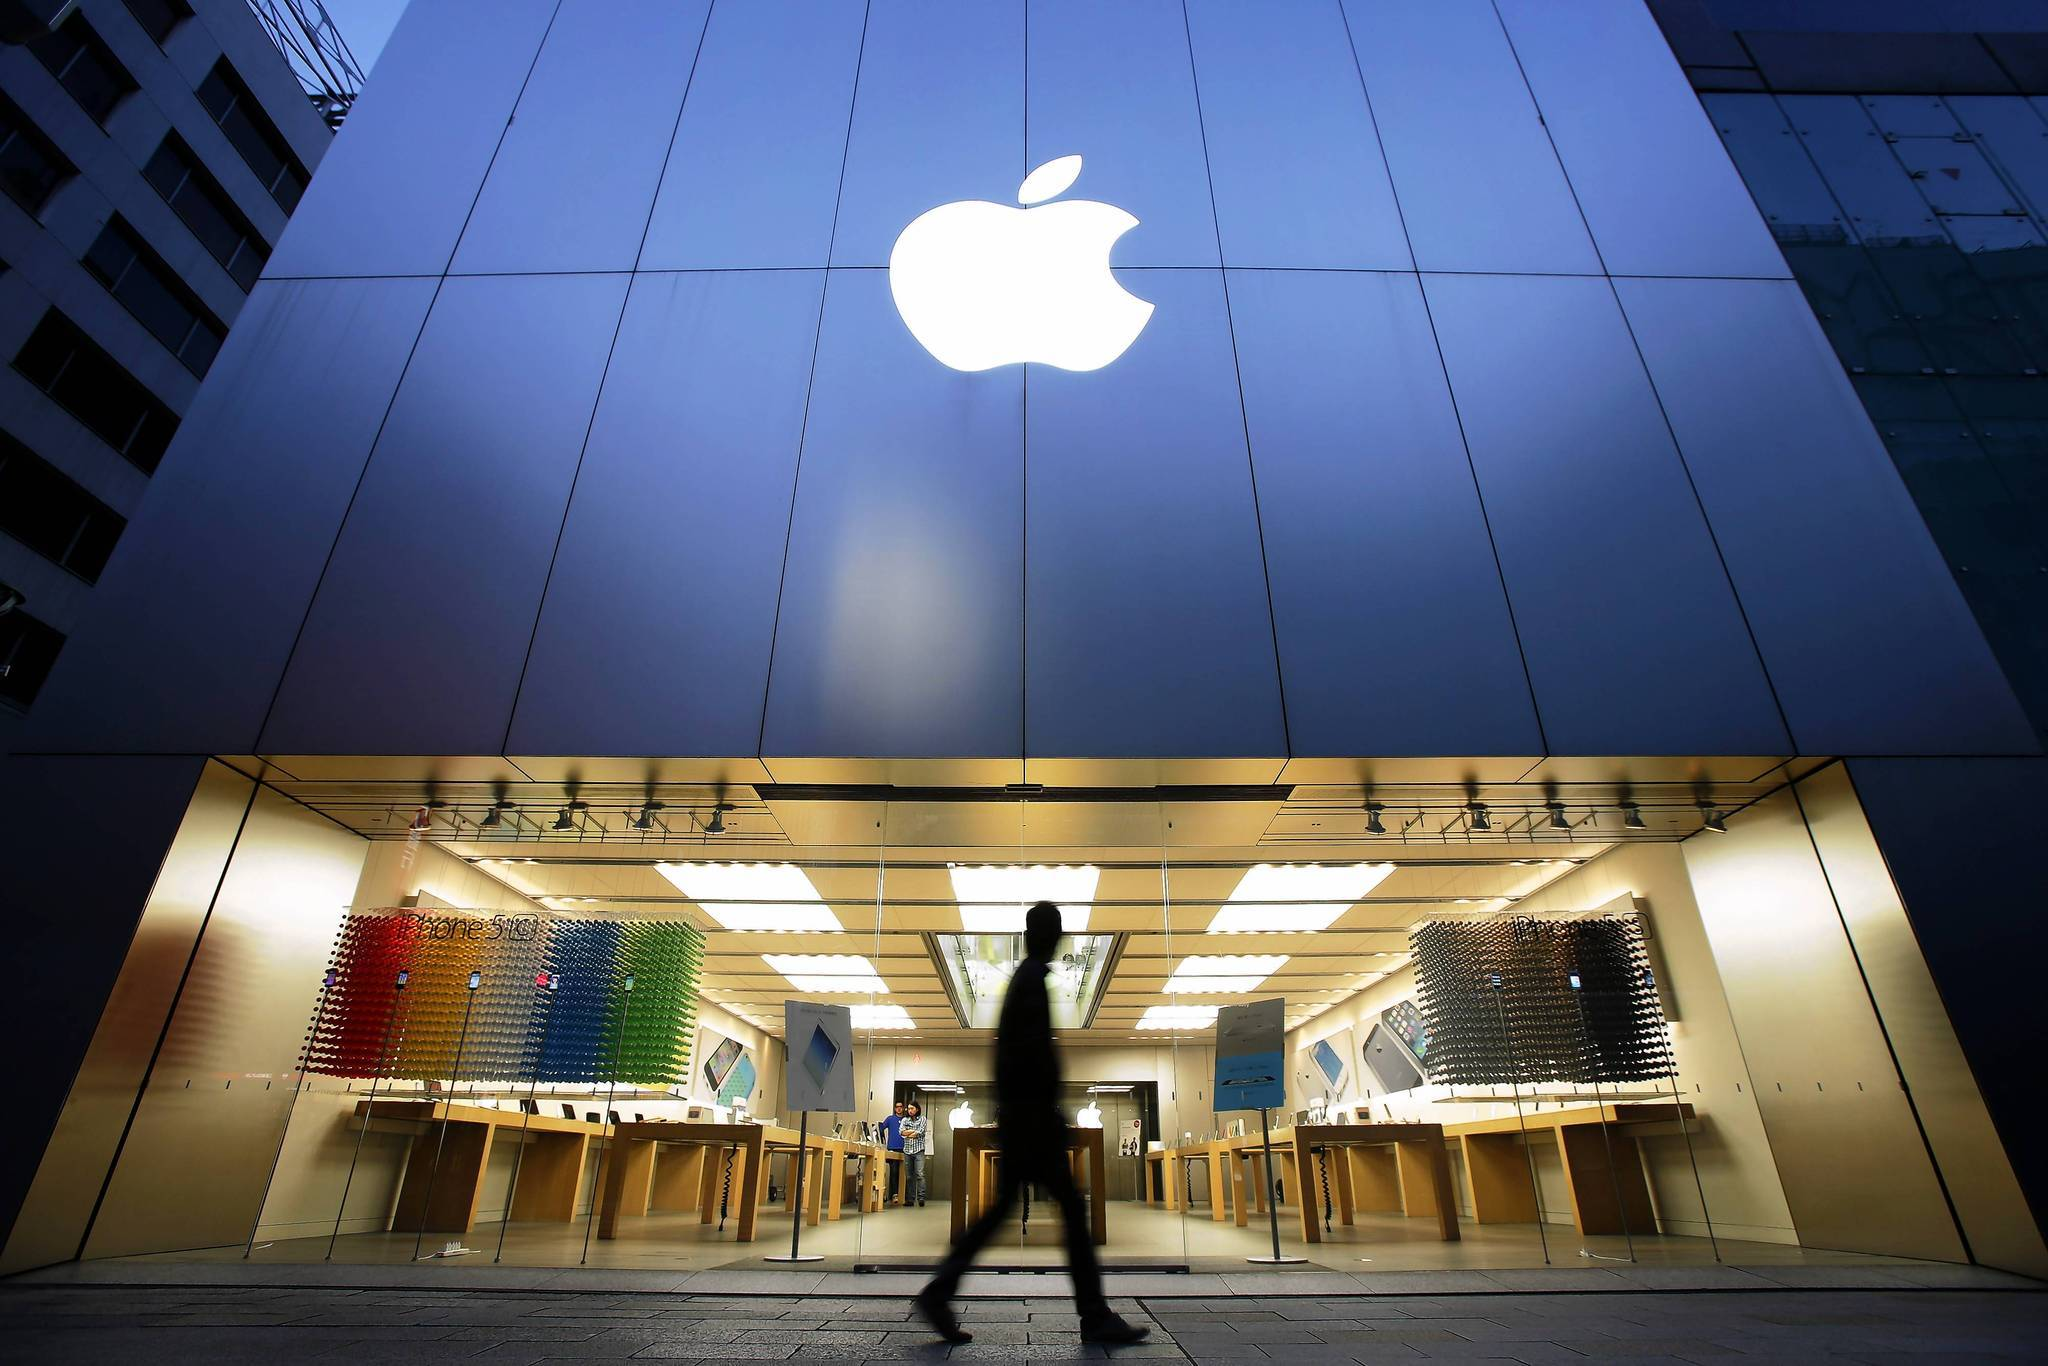 This year, companies have announced $741.5 billion in buybacks compared with $477 billion last year, said Rob Leiphart of Birinyi Associates. This years results are skewed by some very large buybacks, including $50 billion for Apple.